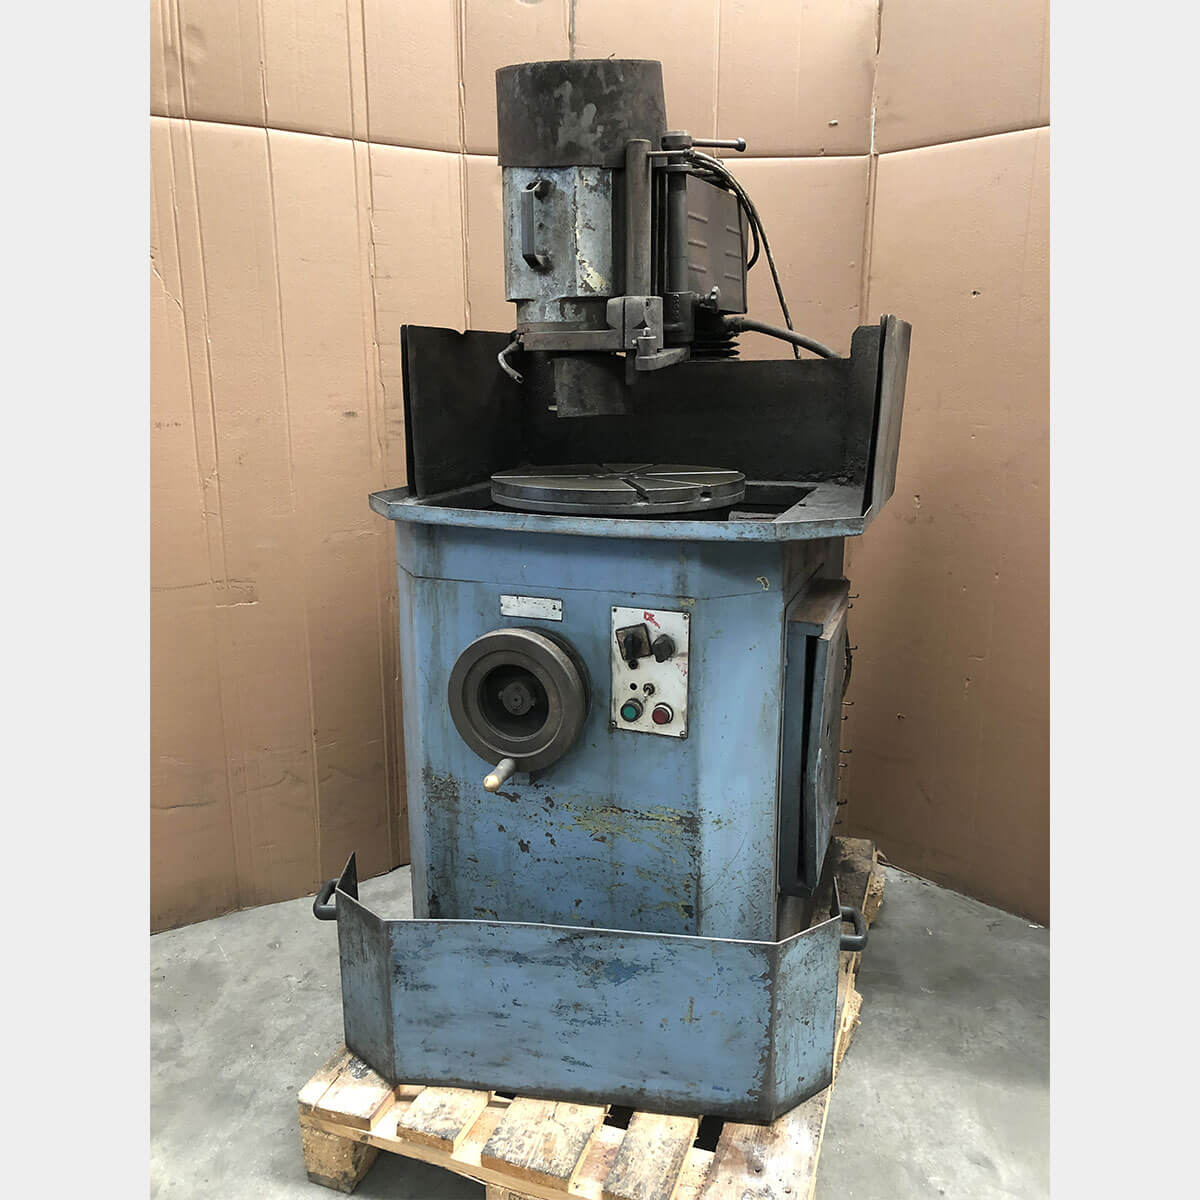 MU634 - COMEC RTV 600 Used Flywheel Grinding Machine